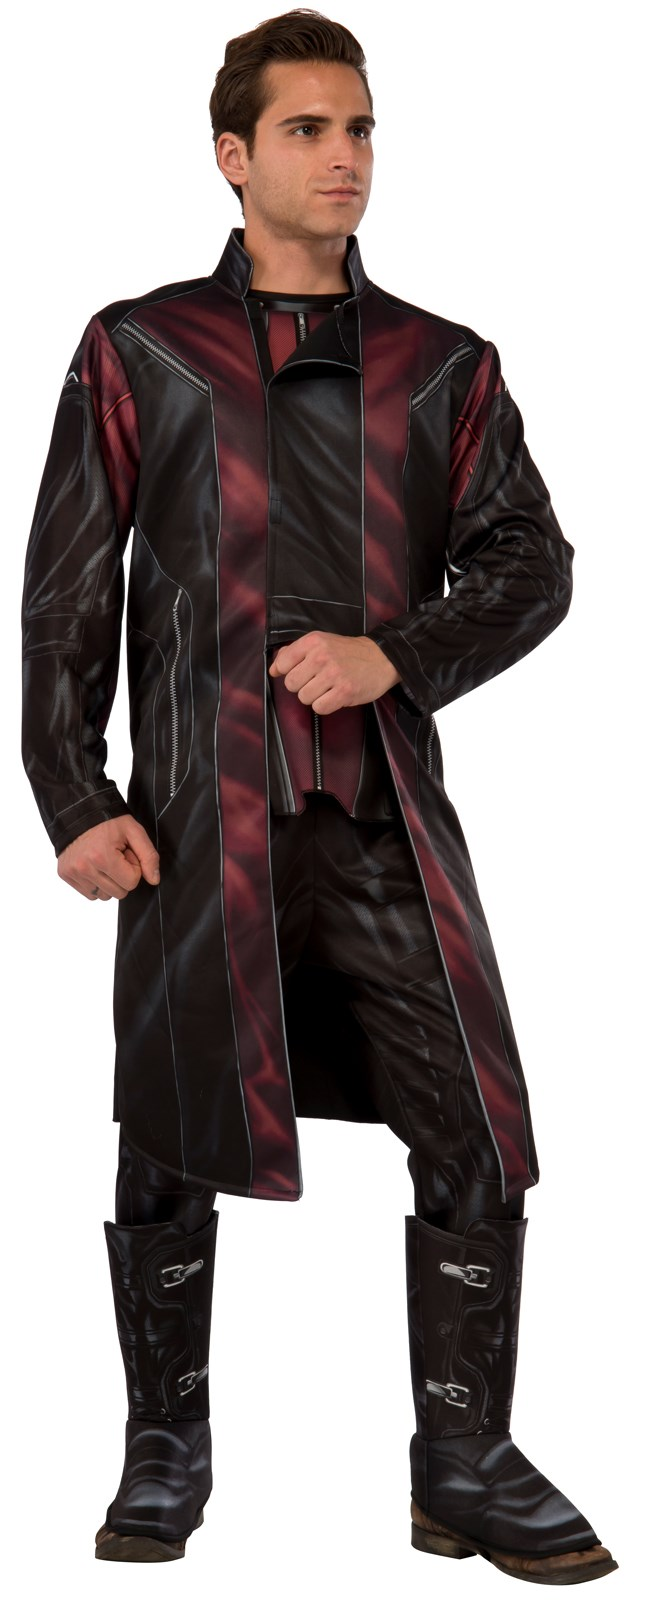 Avengers 2 - Age of Ultron: Deluxe Hawkeye Costume For Adults